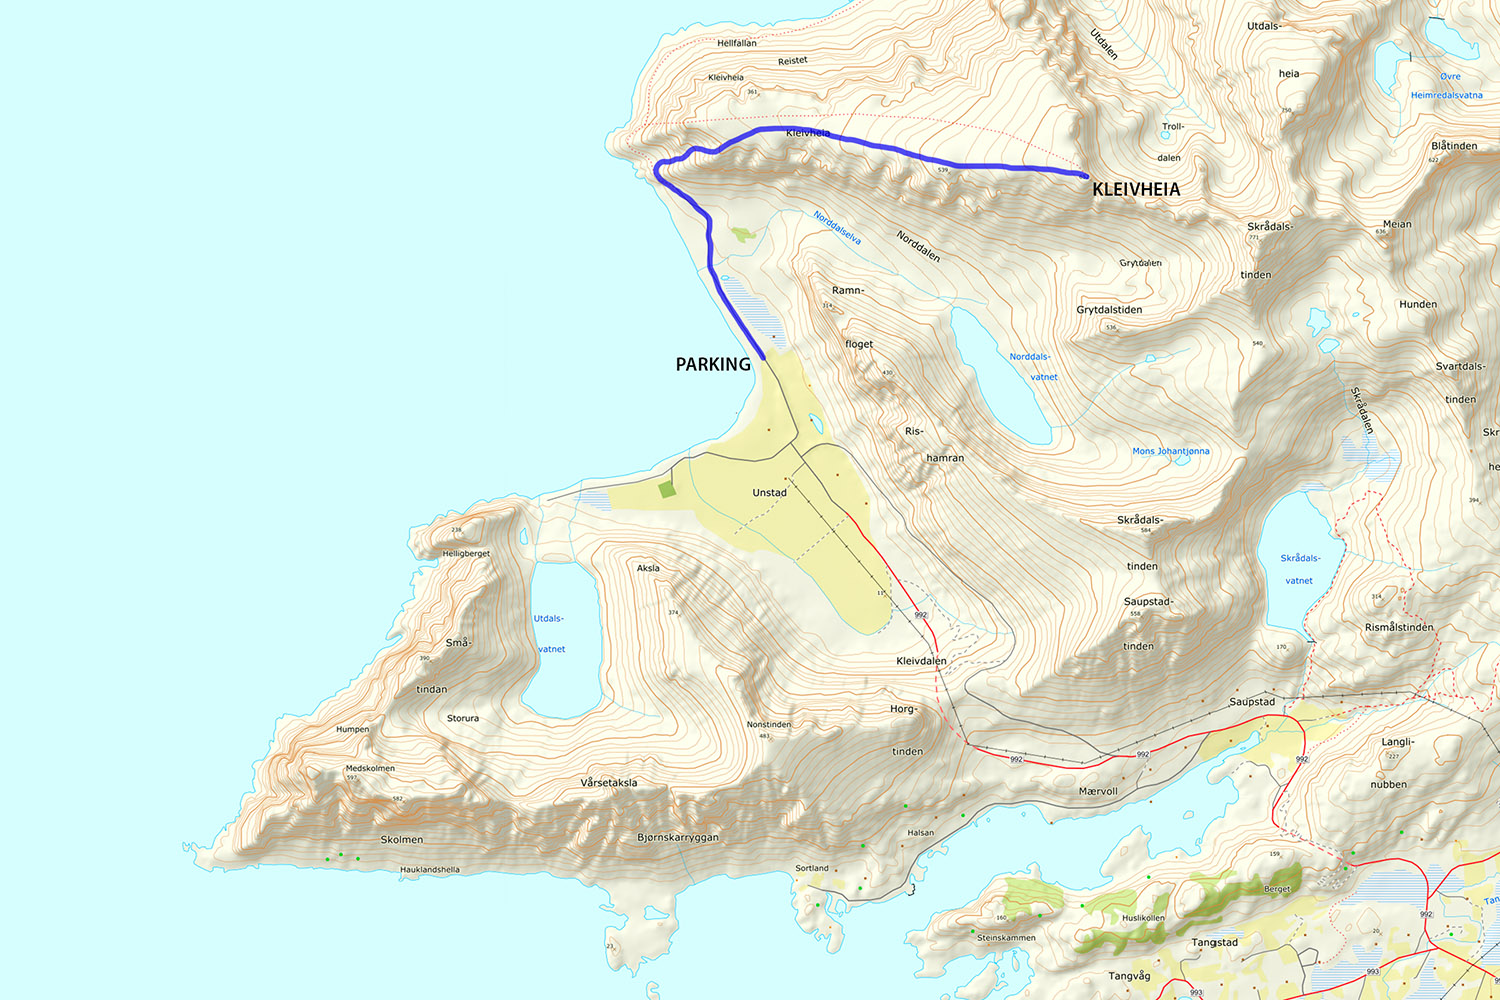 Kleivheia hiking map